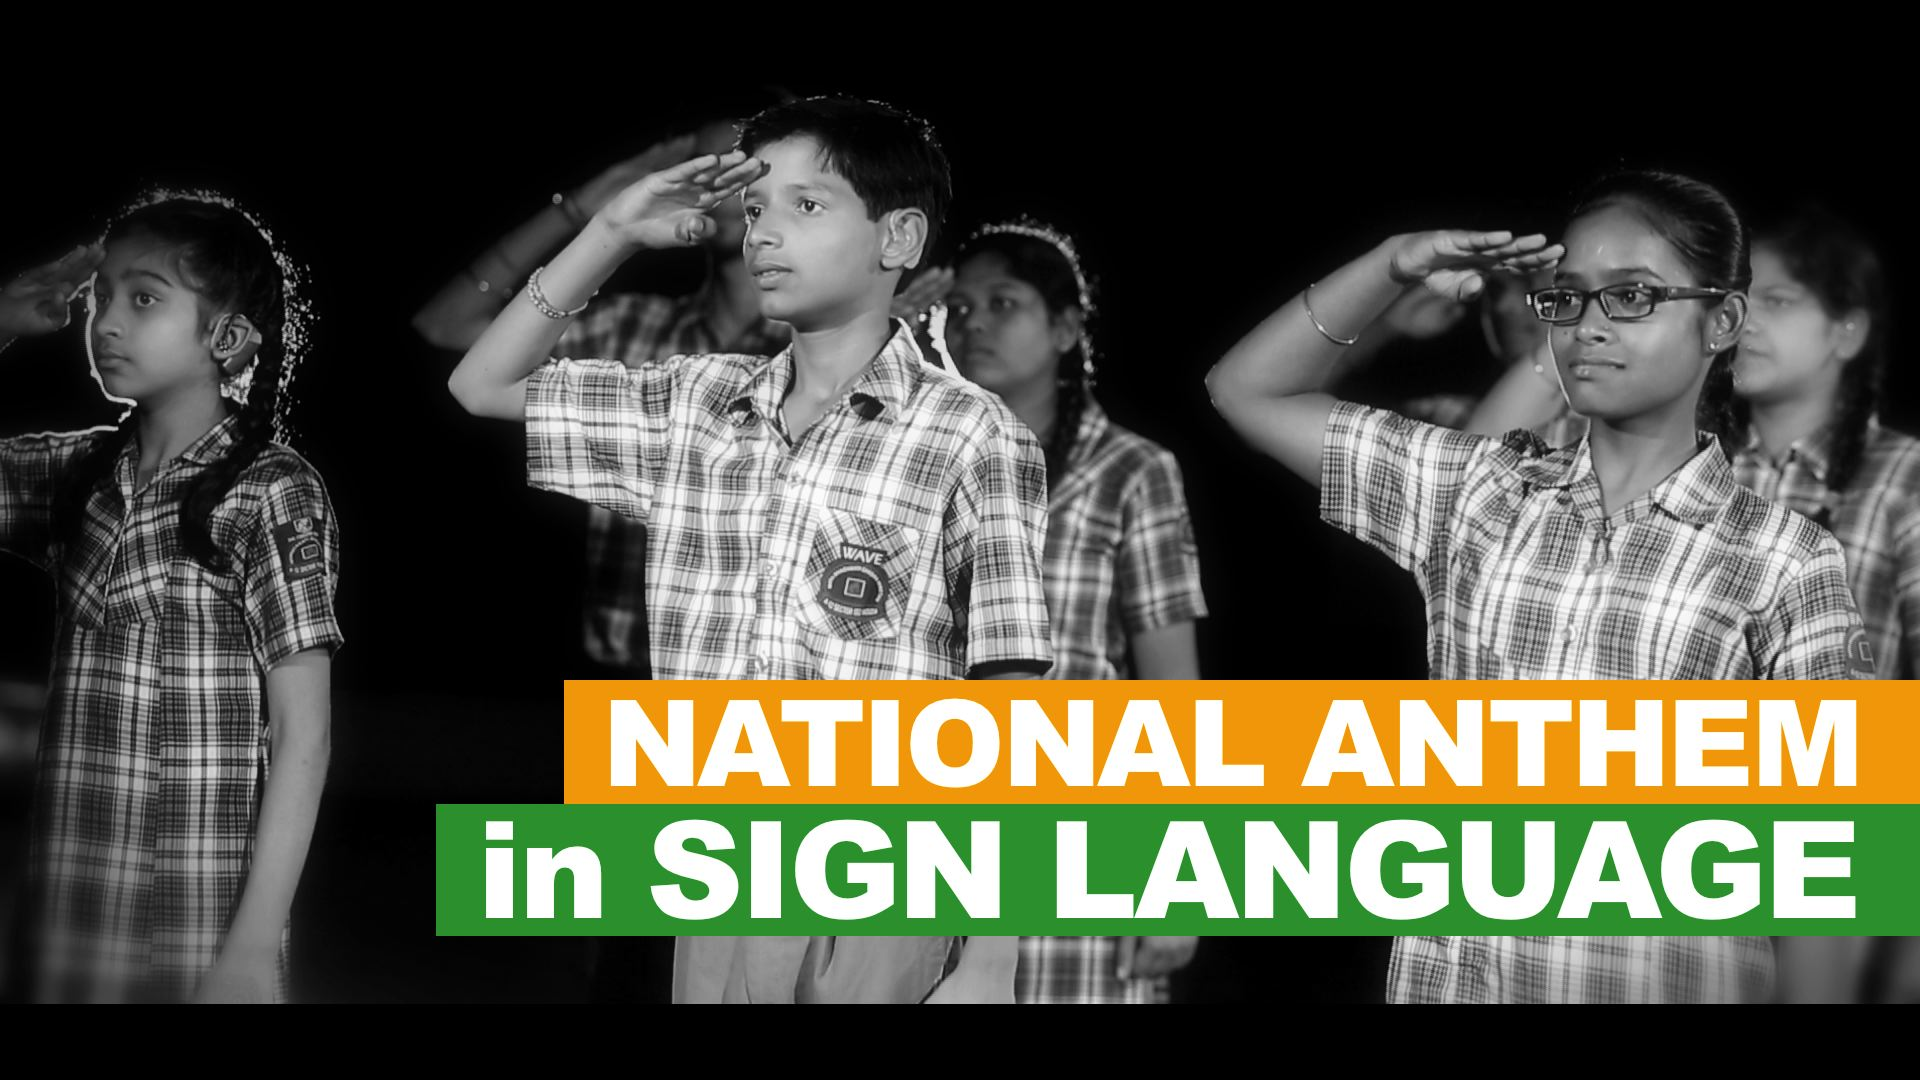 MBCN HI Students Connect All With Indian National Anthem In Sign Language